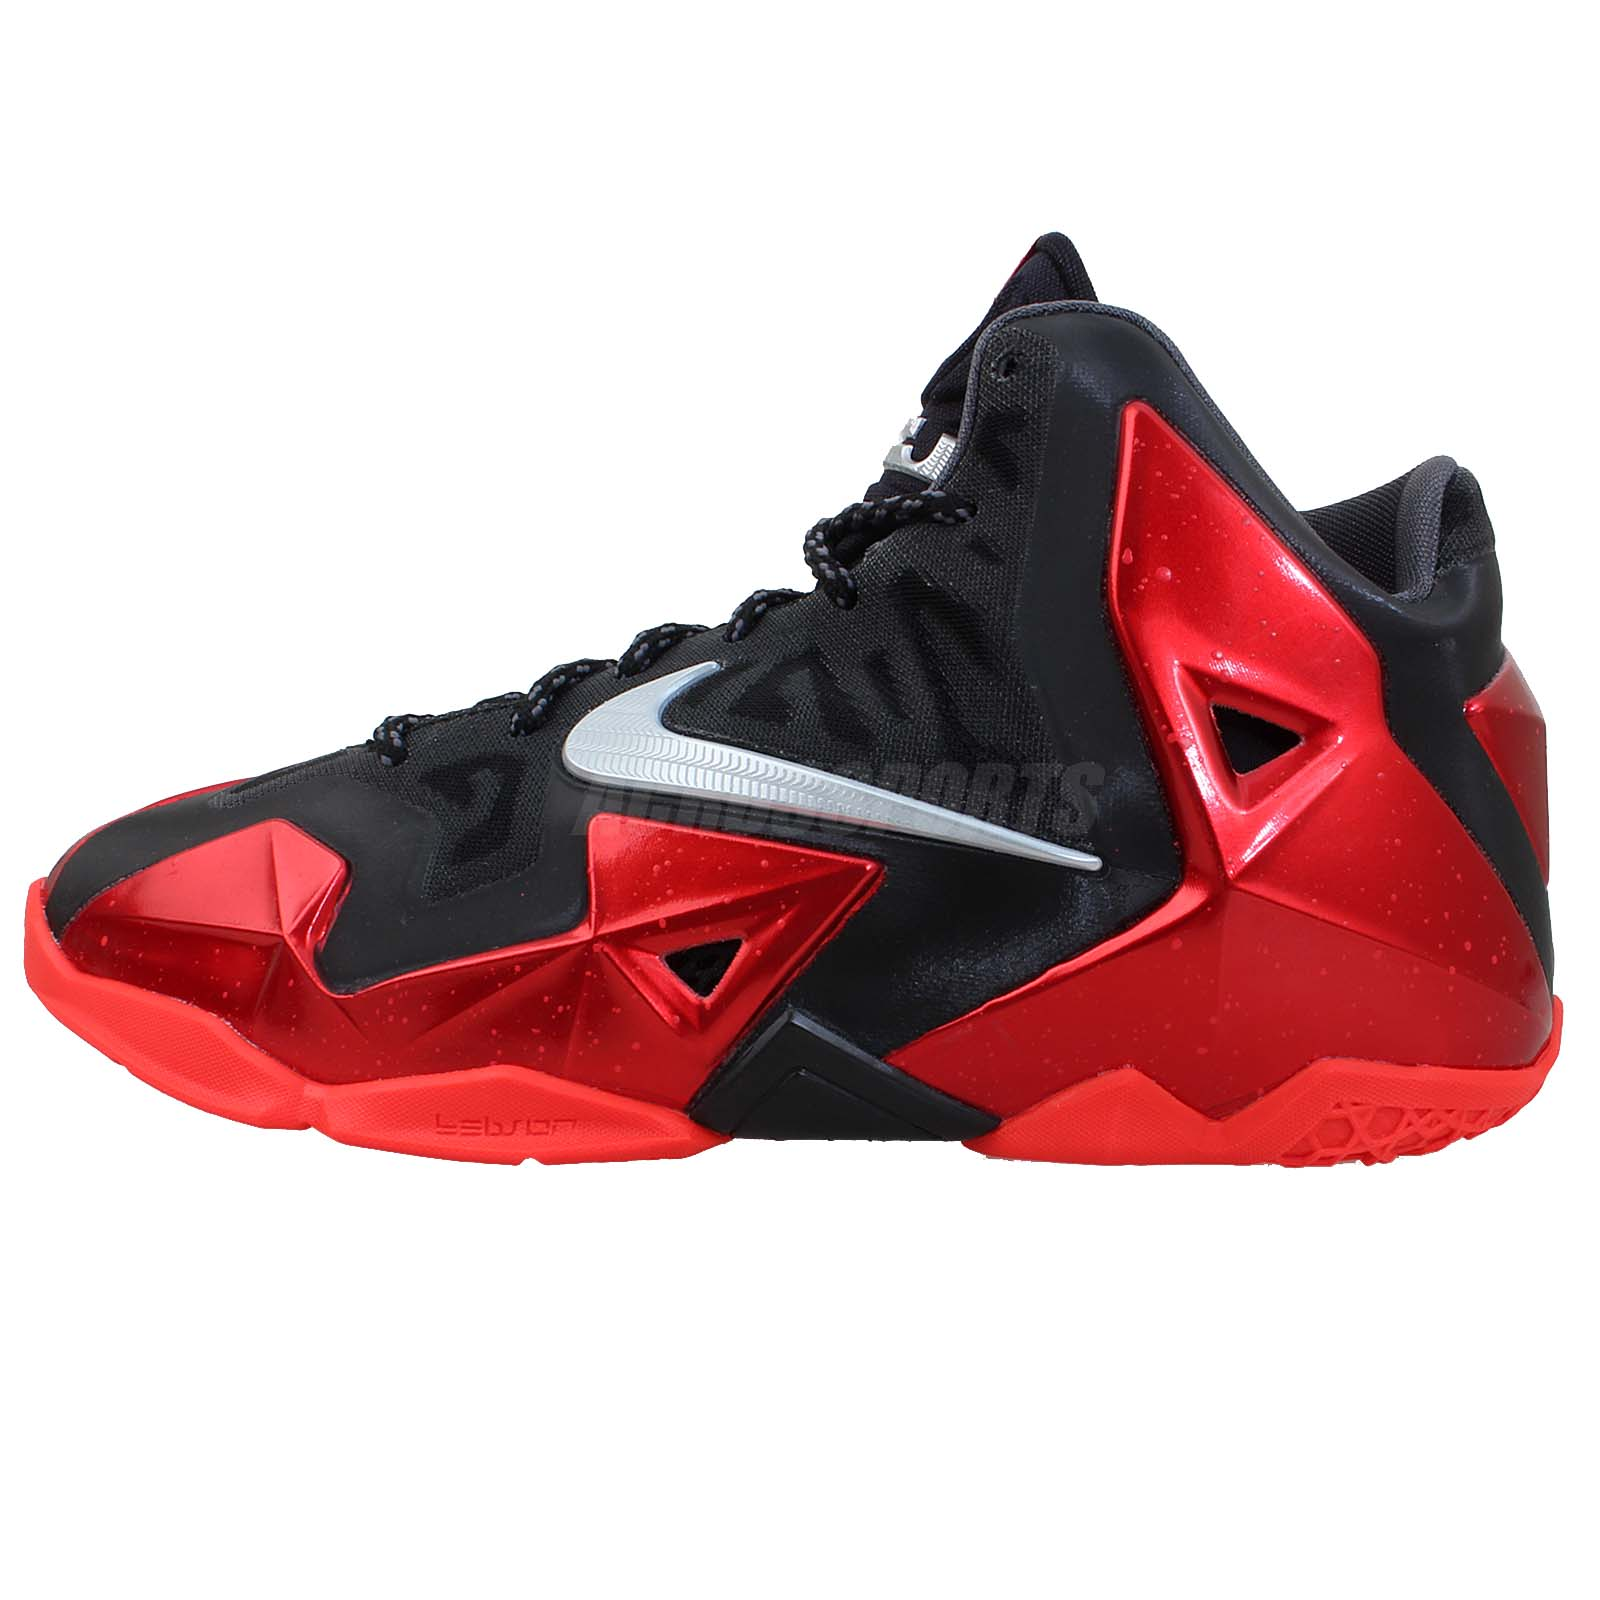 nike lebron xi 11 bred gs 2013 youth kids basketball shoes